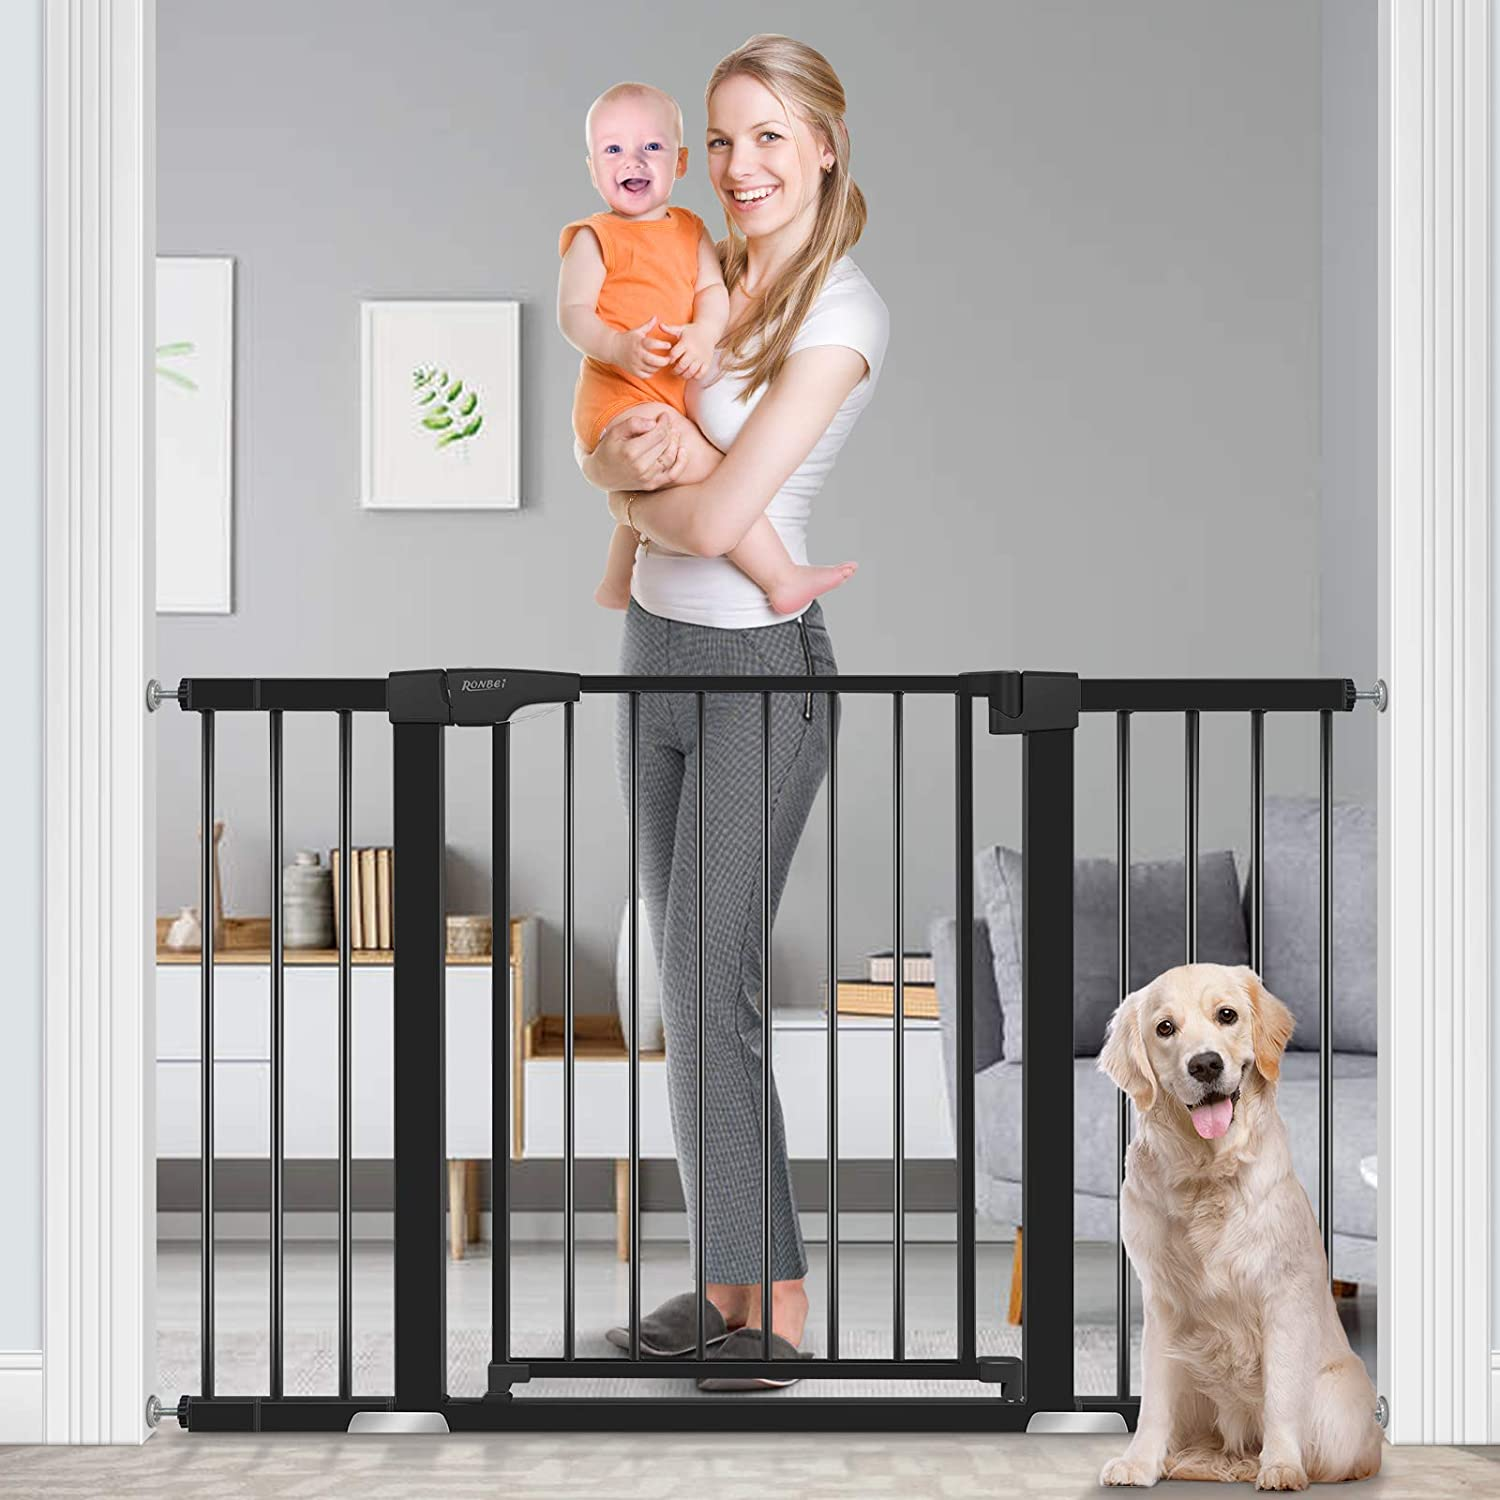 Baby Gate for Doorways and Stairs, RONBEI 51.5